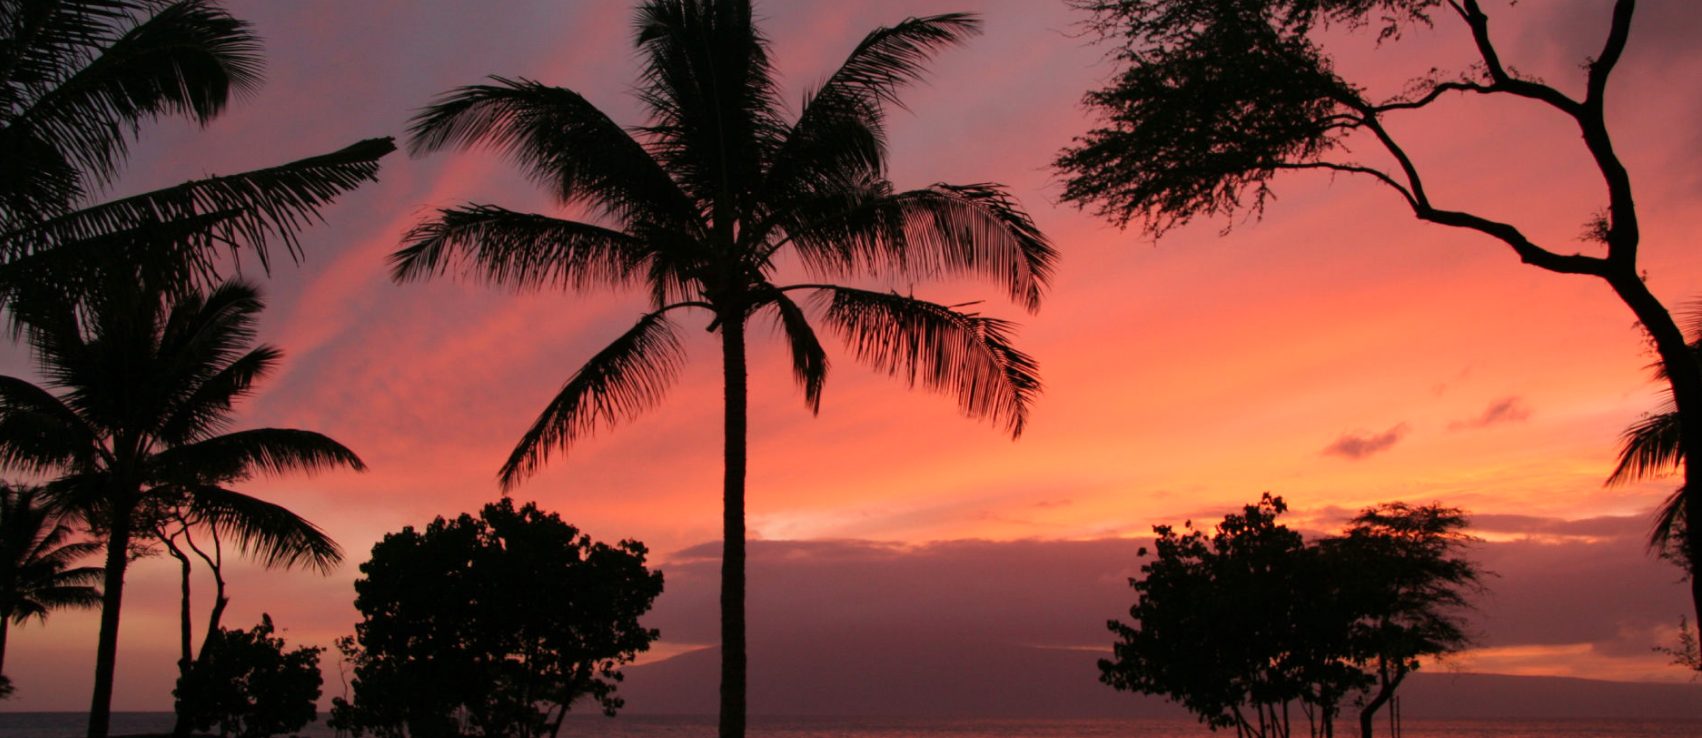 Sunset landscape with palm trees and trees